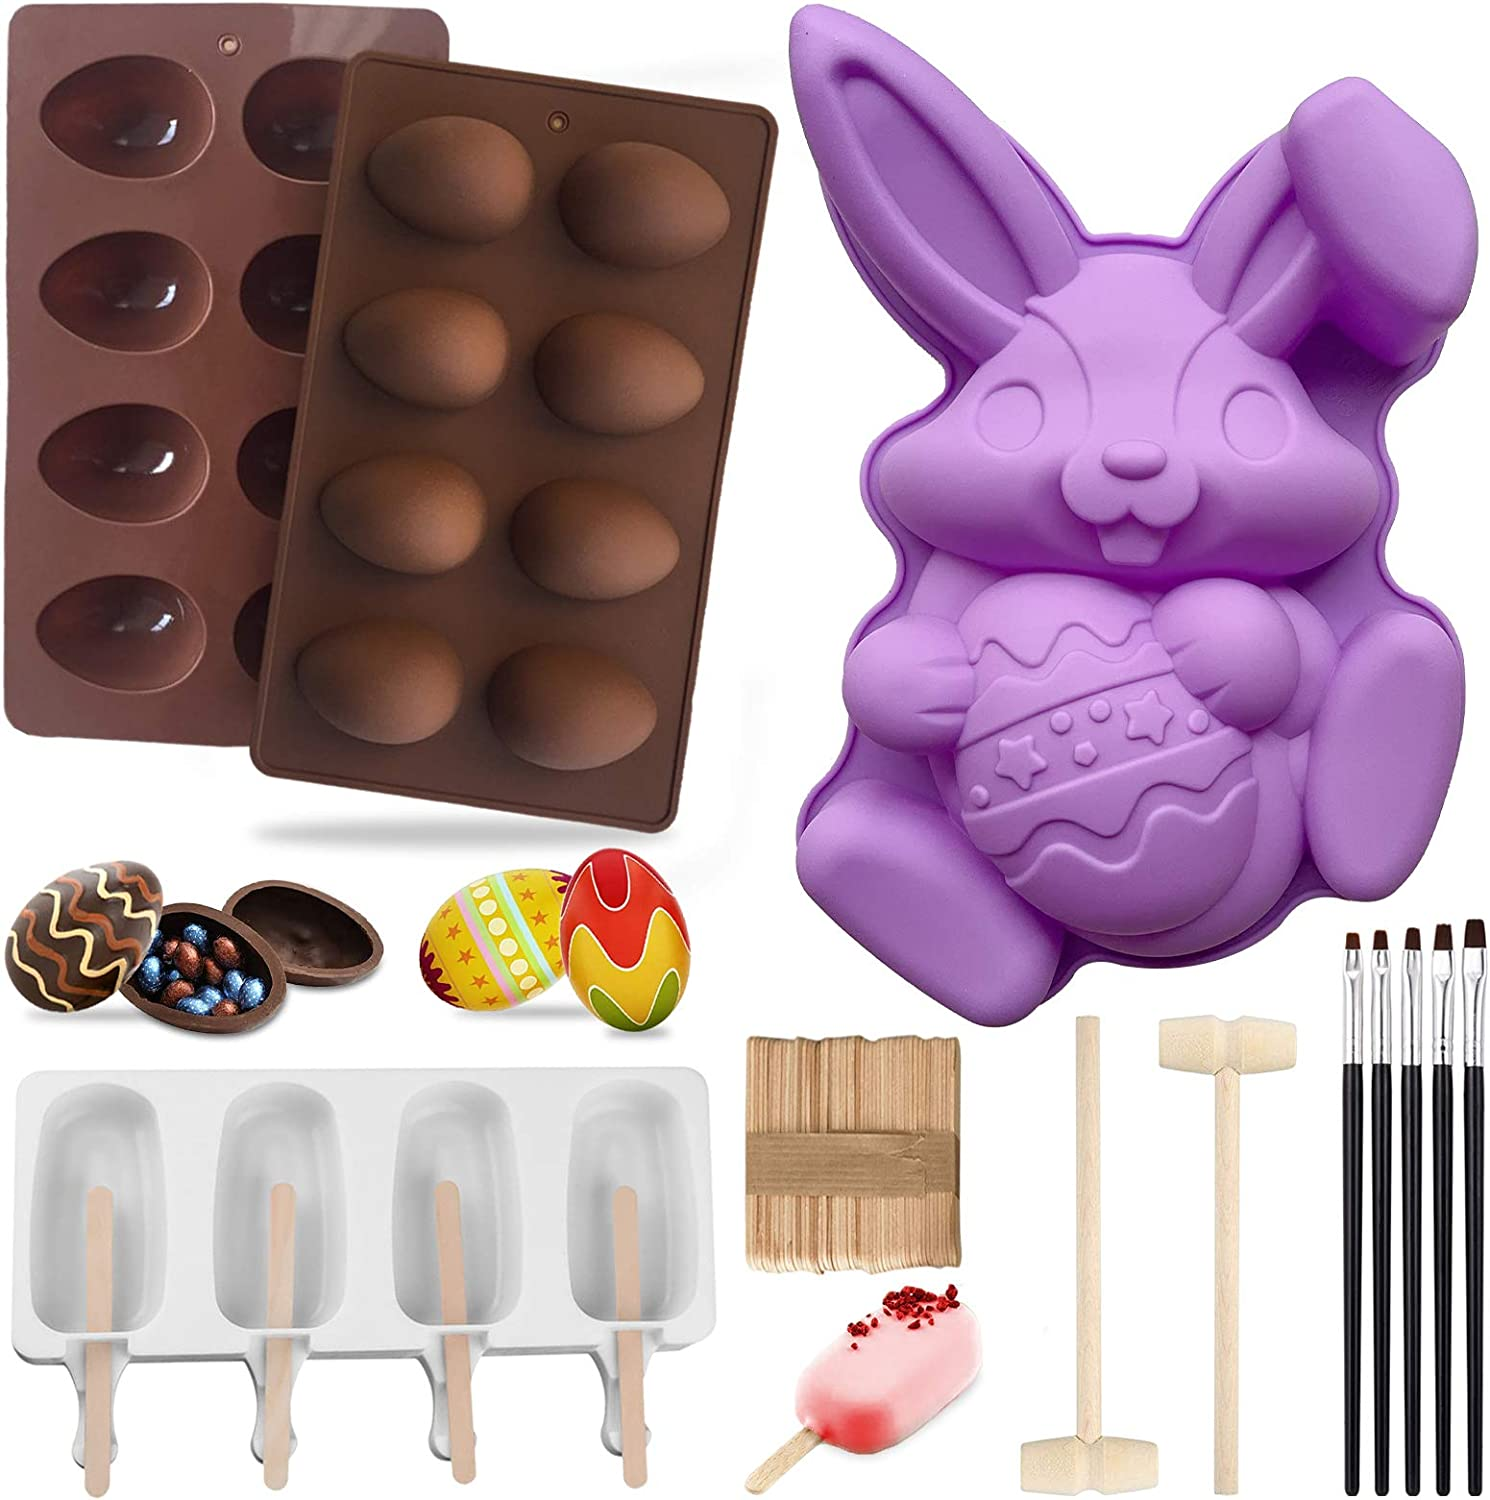 Easter Silicone Molds,Big Bunny Molds,Easter Eggs Silicone Mold,Popsicle Silicone Molds with 50 Wooden Sticks,2 Mini Wooden Hammer,5 Cake Brushes for DIY Chocolate Bomb,Candy (A)